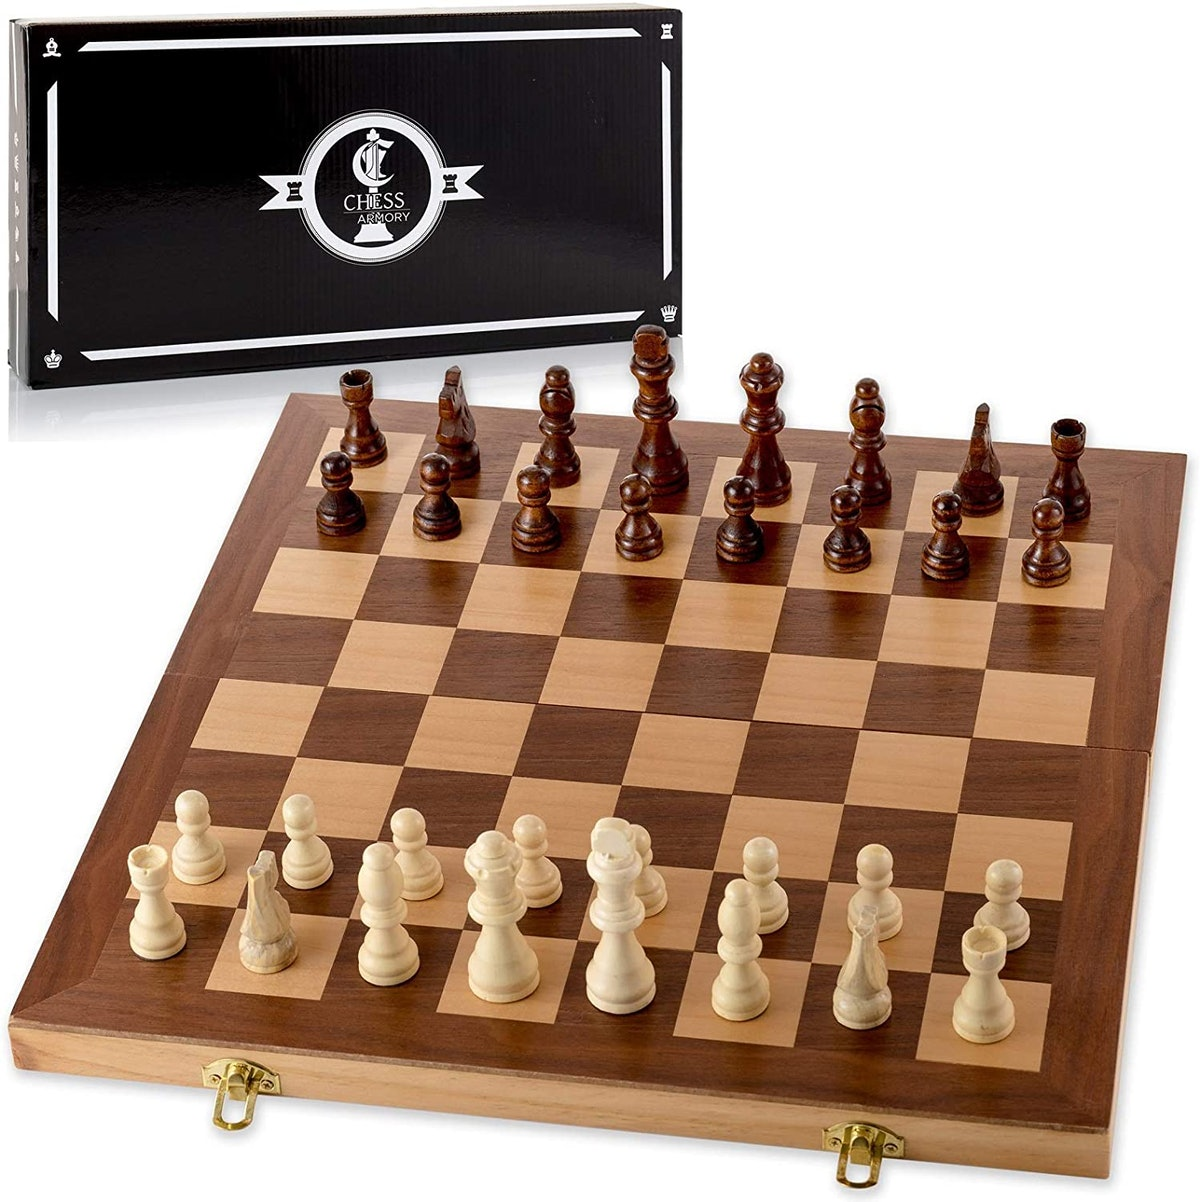 Chess Armory 15-Inch Wooden Chess Set with Felted Game Board Interior for Storage